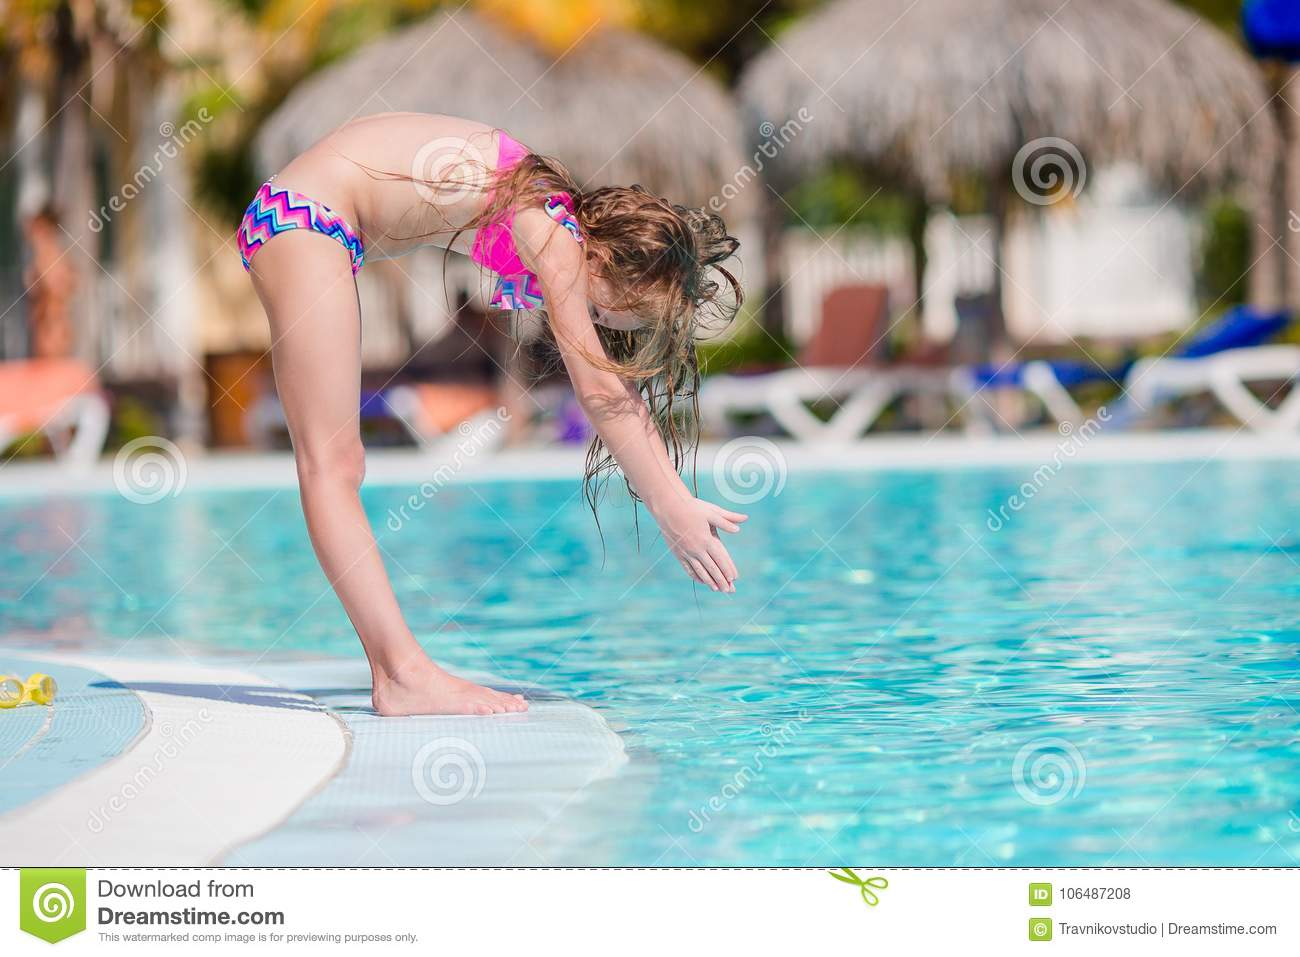 Little Active Adorable Girl In Outdoor Swimming Pool Ready To Swim ... a4d3267406